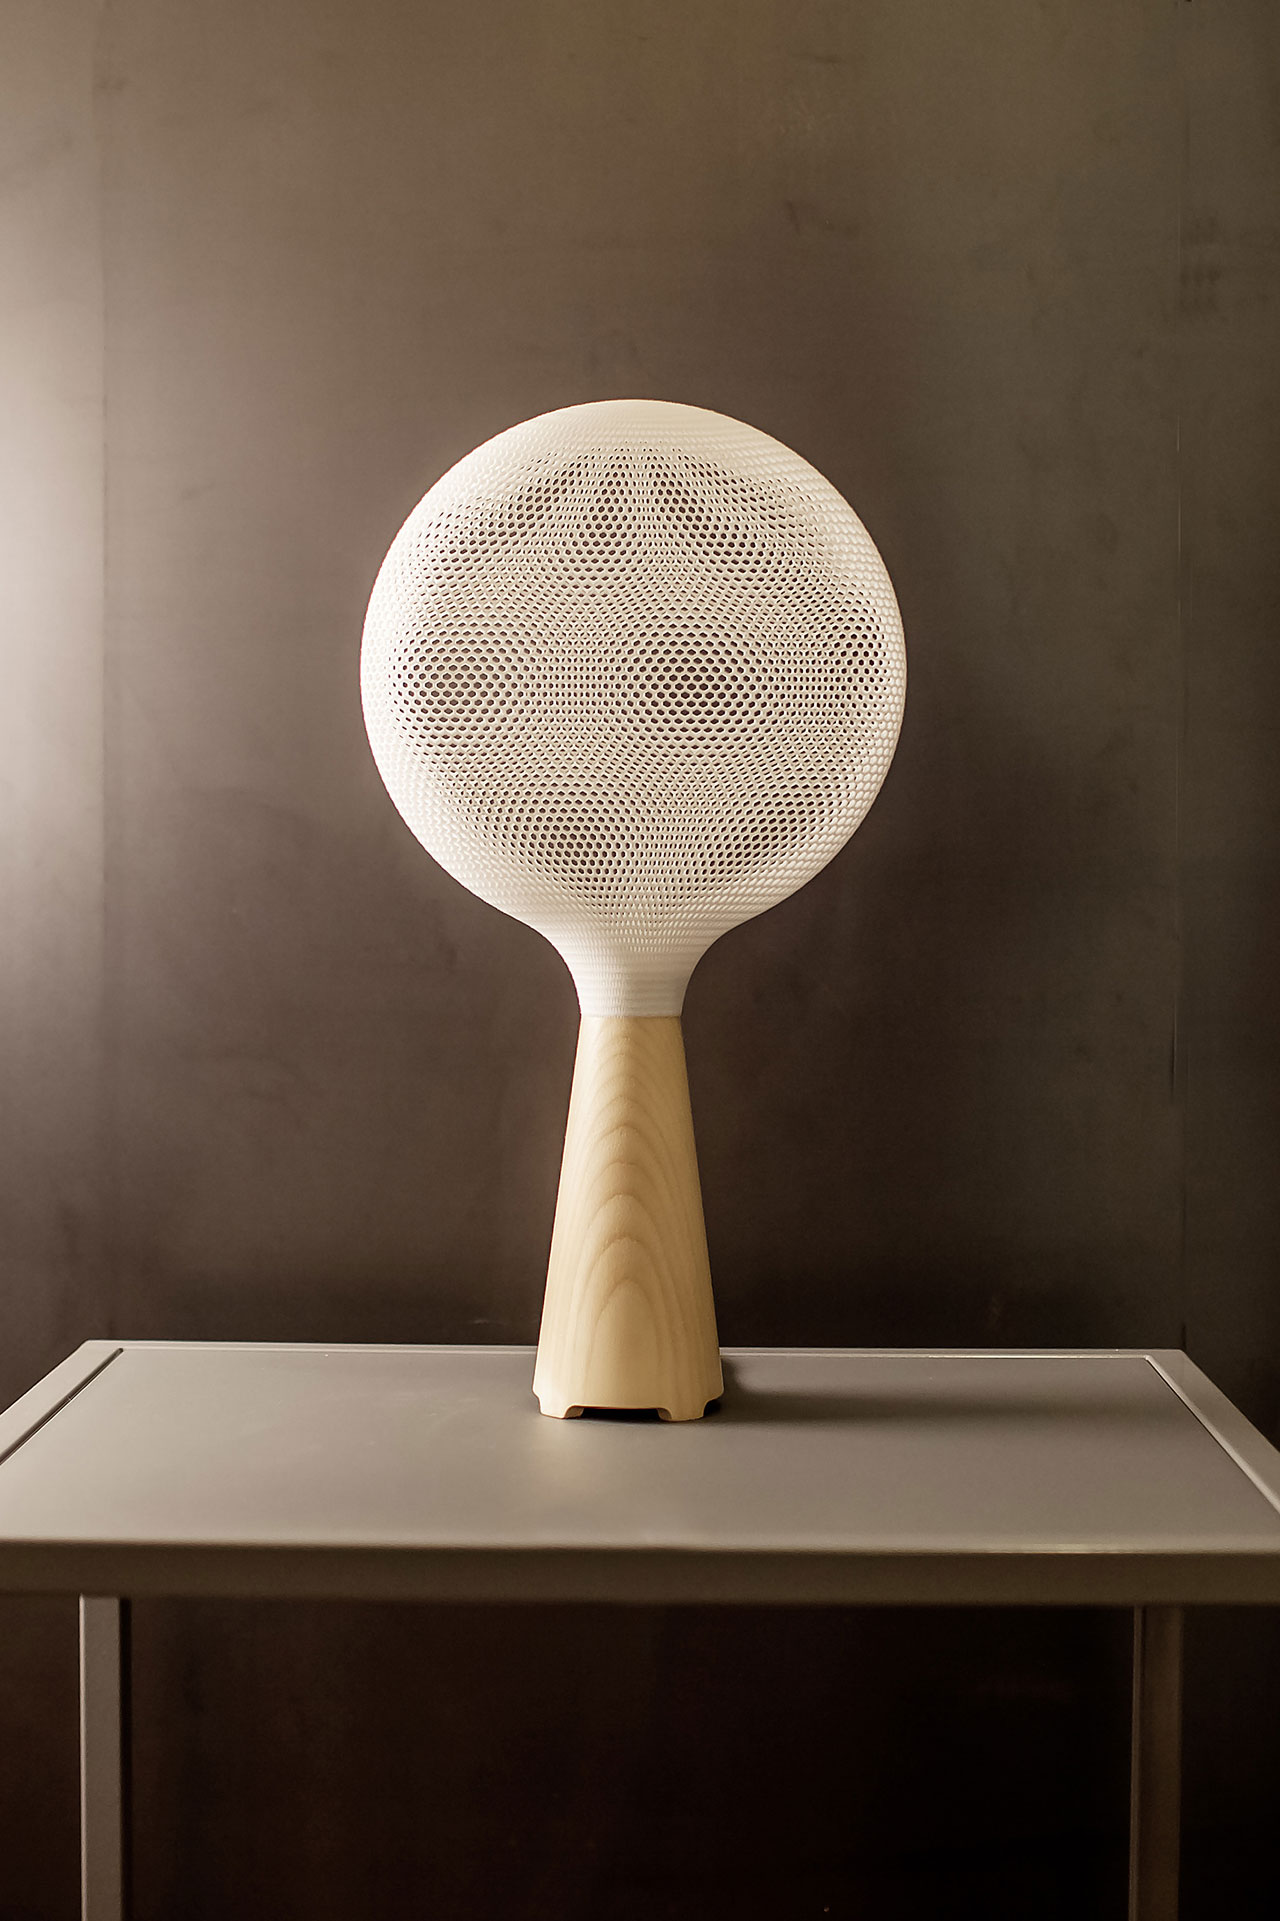 ExNovo, Affilia lamp. Photo courtesy alessandro zambelli design studio.